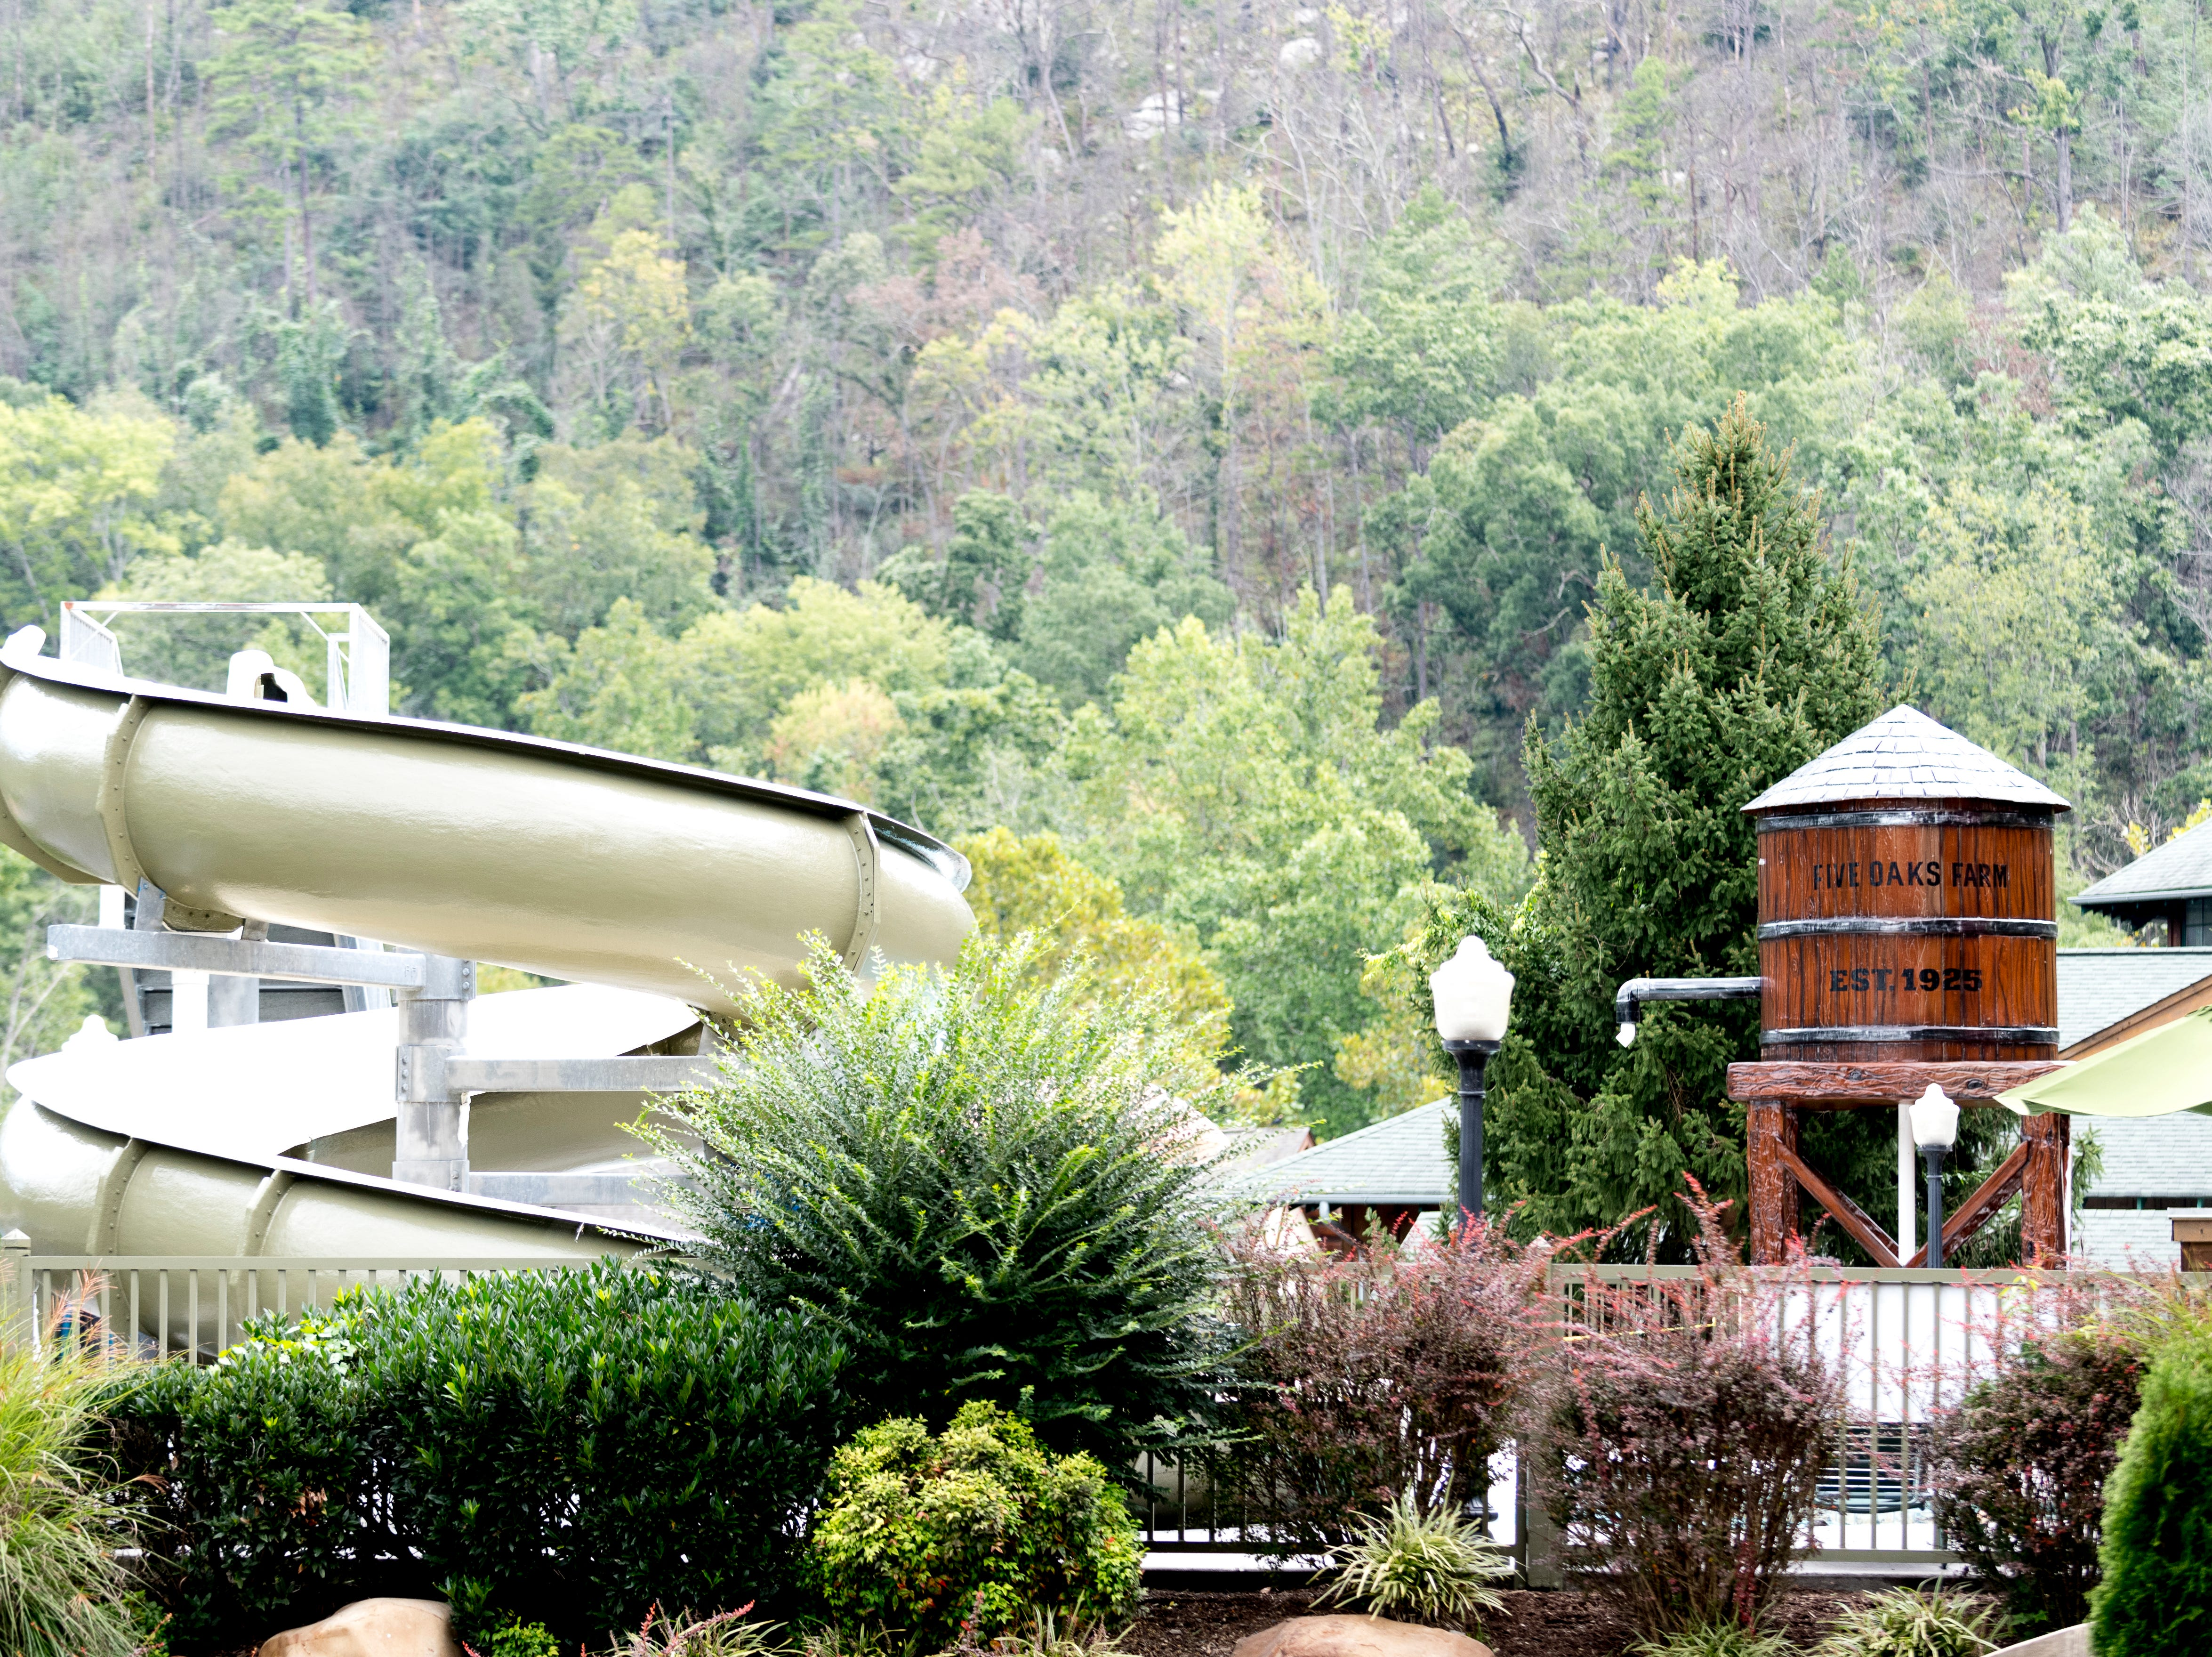 The outdoor pool at The Appy Lodge in Gatlinburg, Tennessee on Tuesday, September 18, 2018. The hotel partnered with Appalachian organizations to create a Appalachian Trail theme.